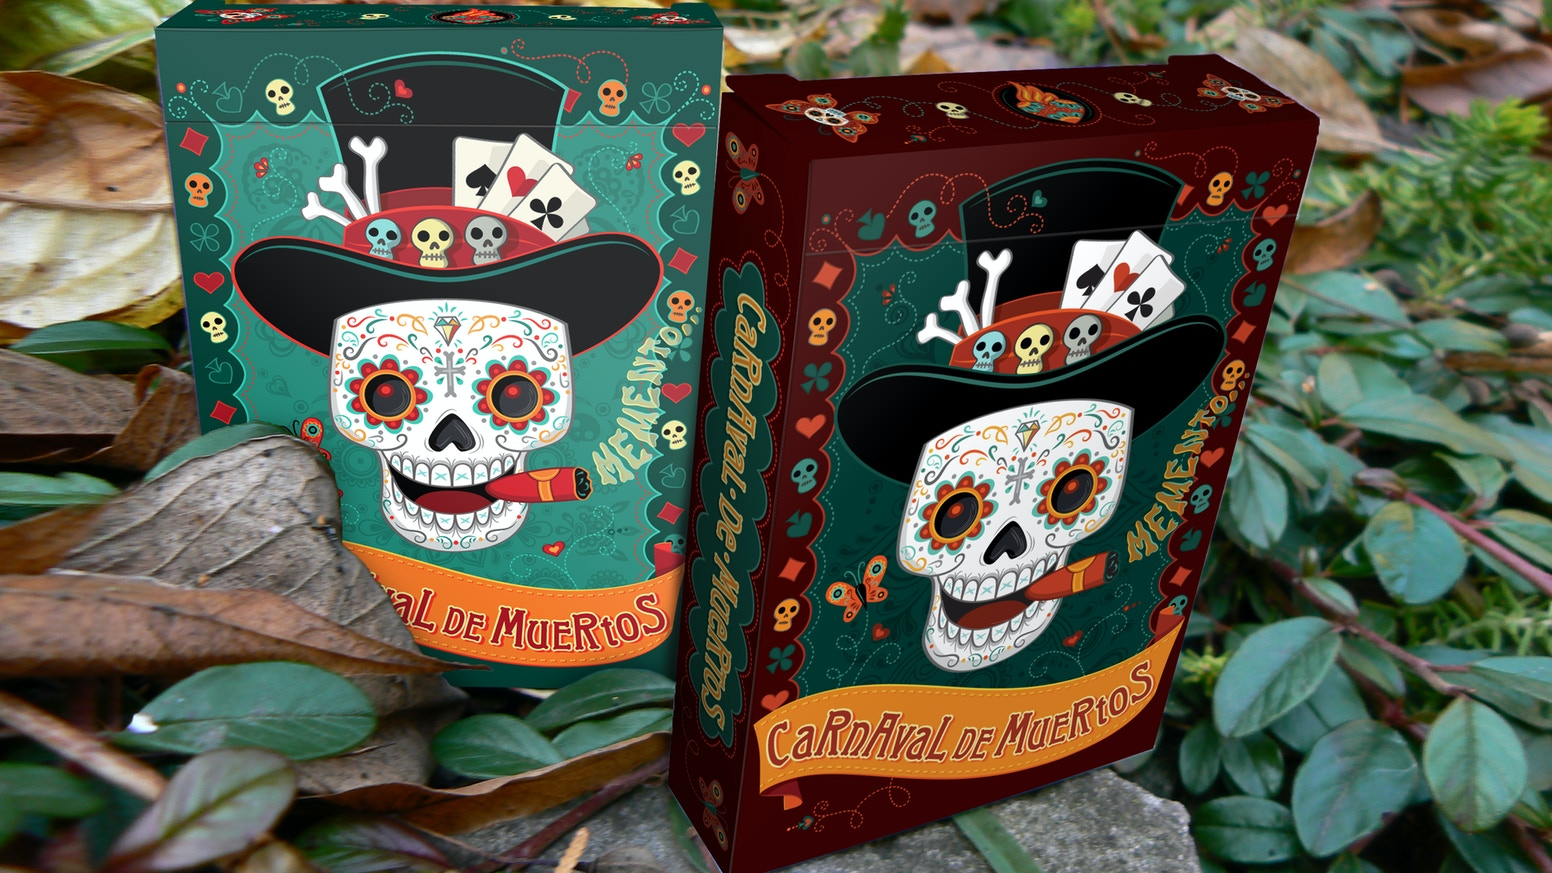 Beautiful hand drawn playing cards, inspired by the celebration of Dia de los muertos. Designed and printed by Noir Arts | NPCC